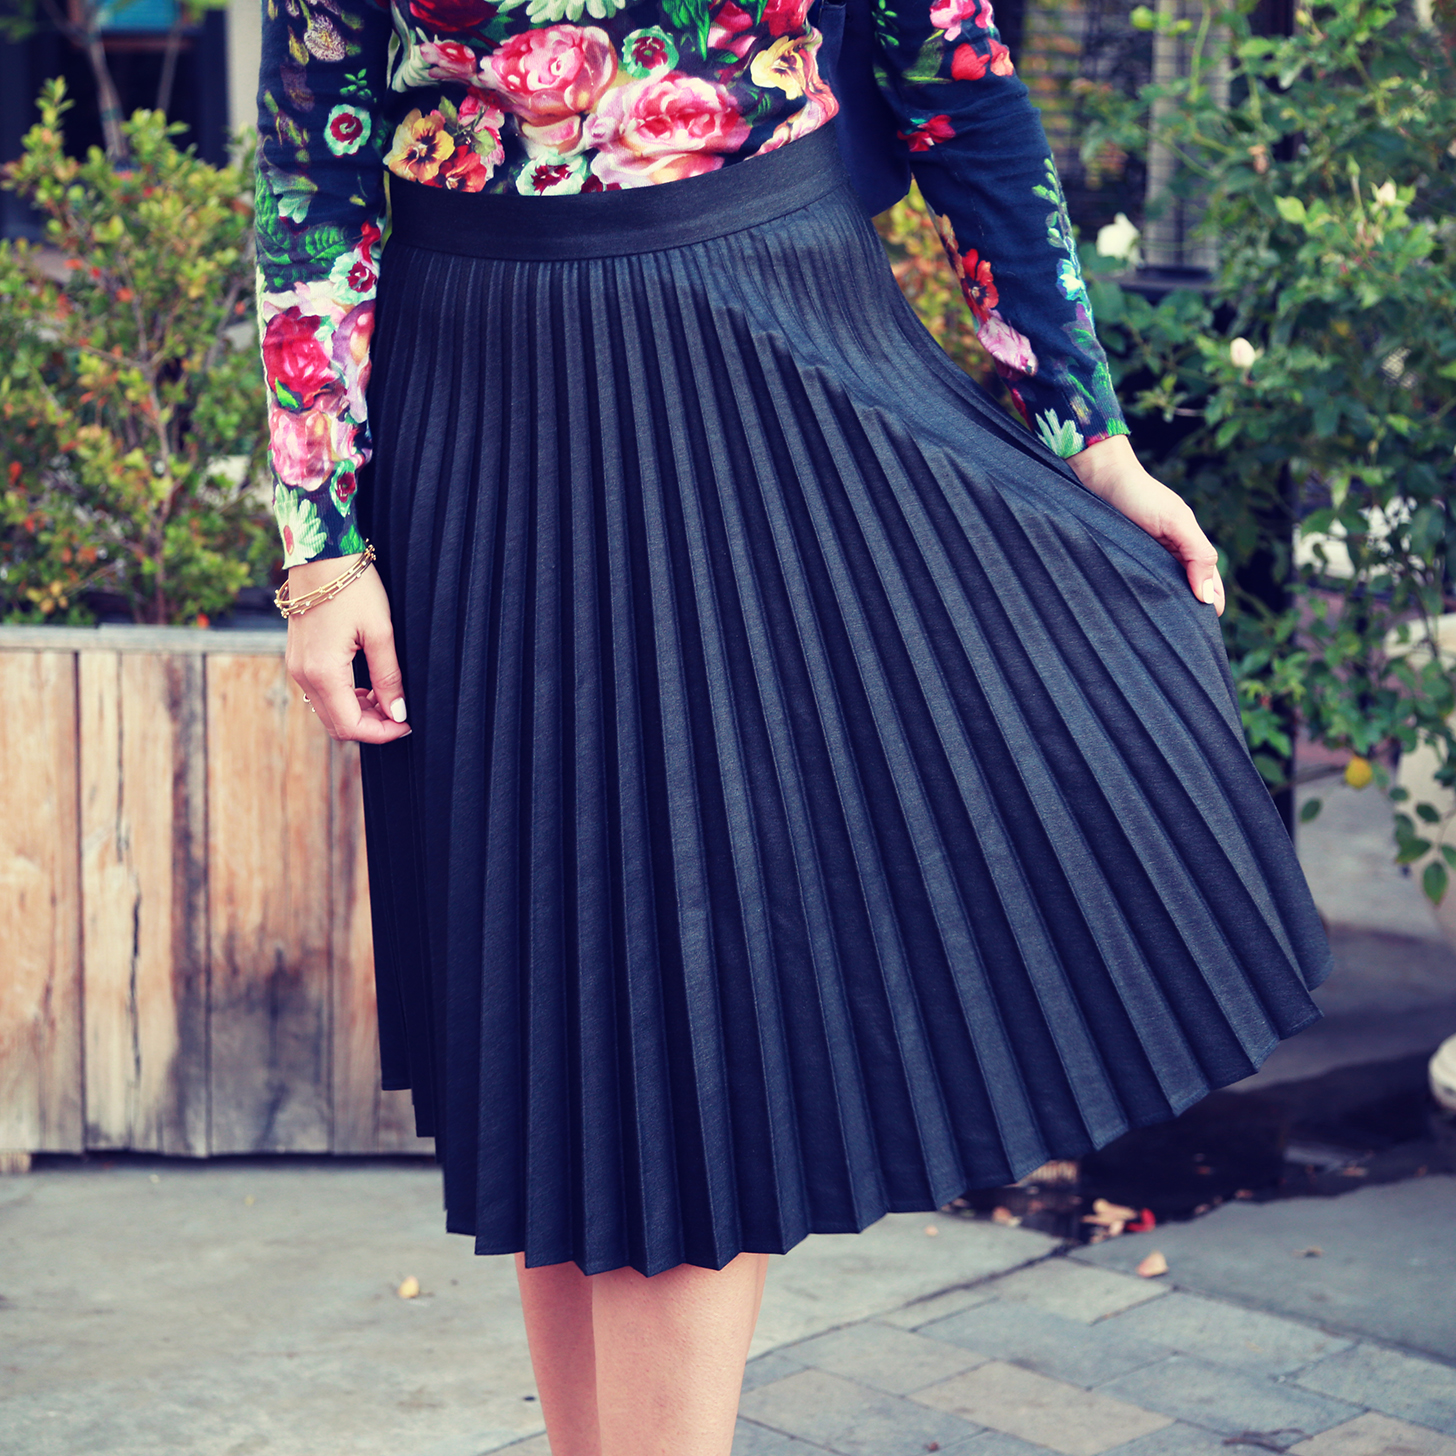 how to keep pleats in a skirt